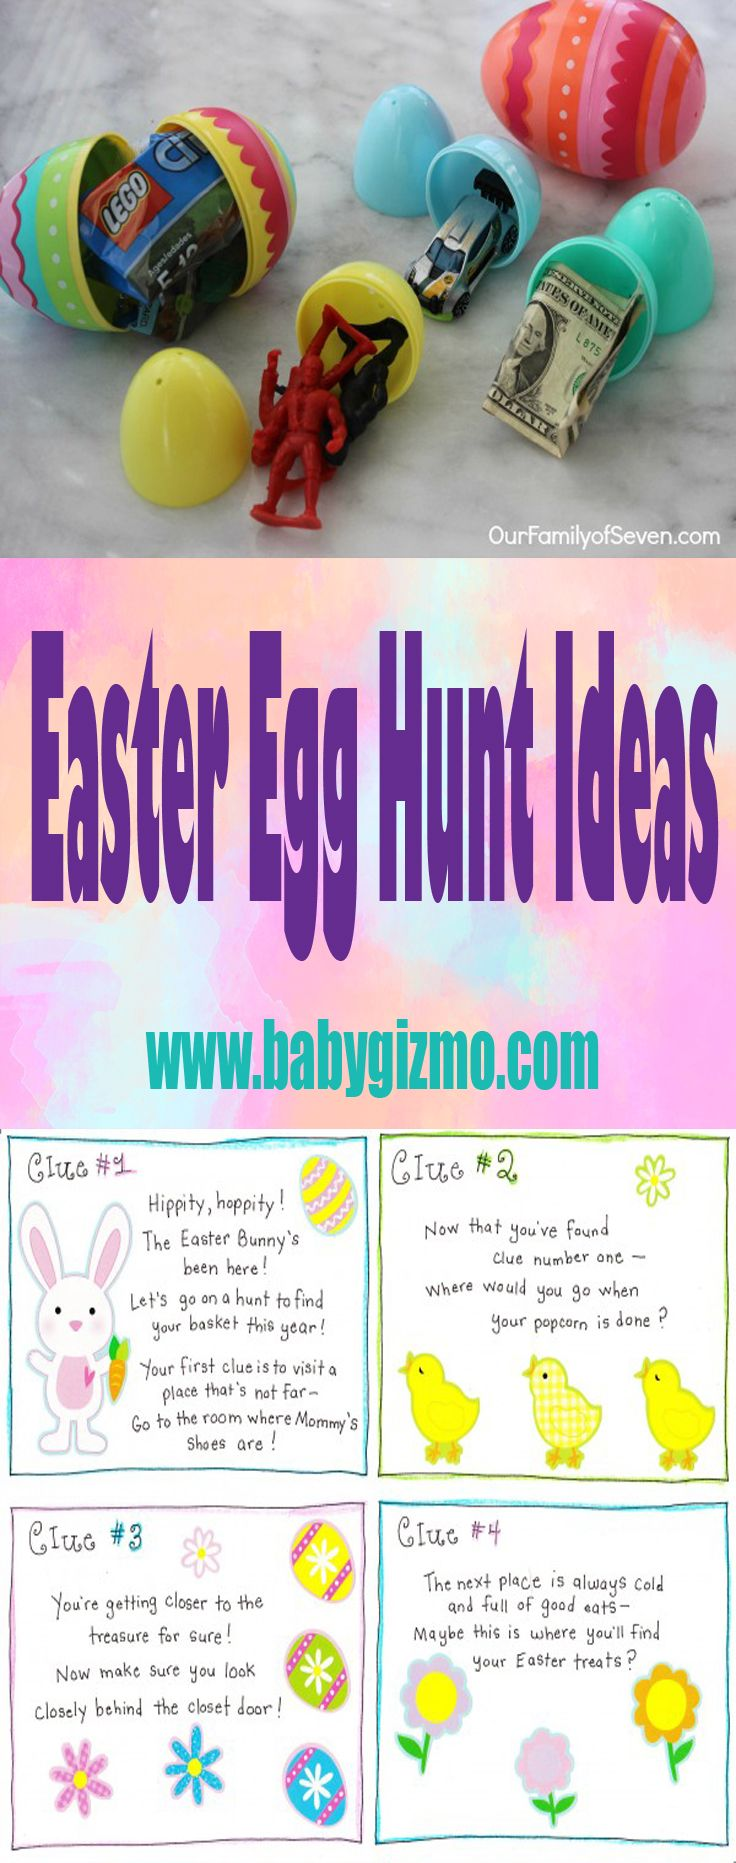 Here are some fun easter egg hunt ideas for you to try easter here are some fun easter egg hunt ideas for you to try easter negle Gallery